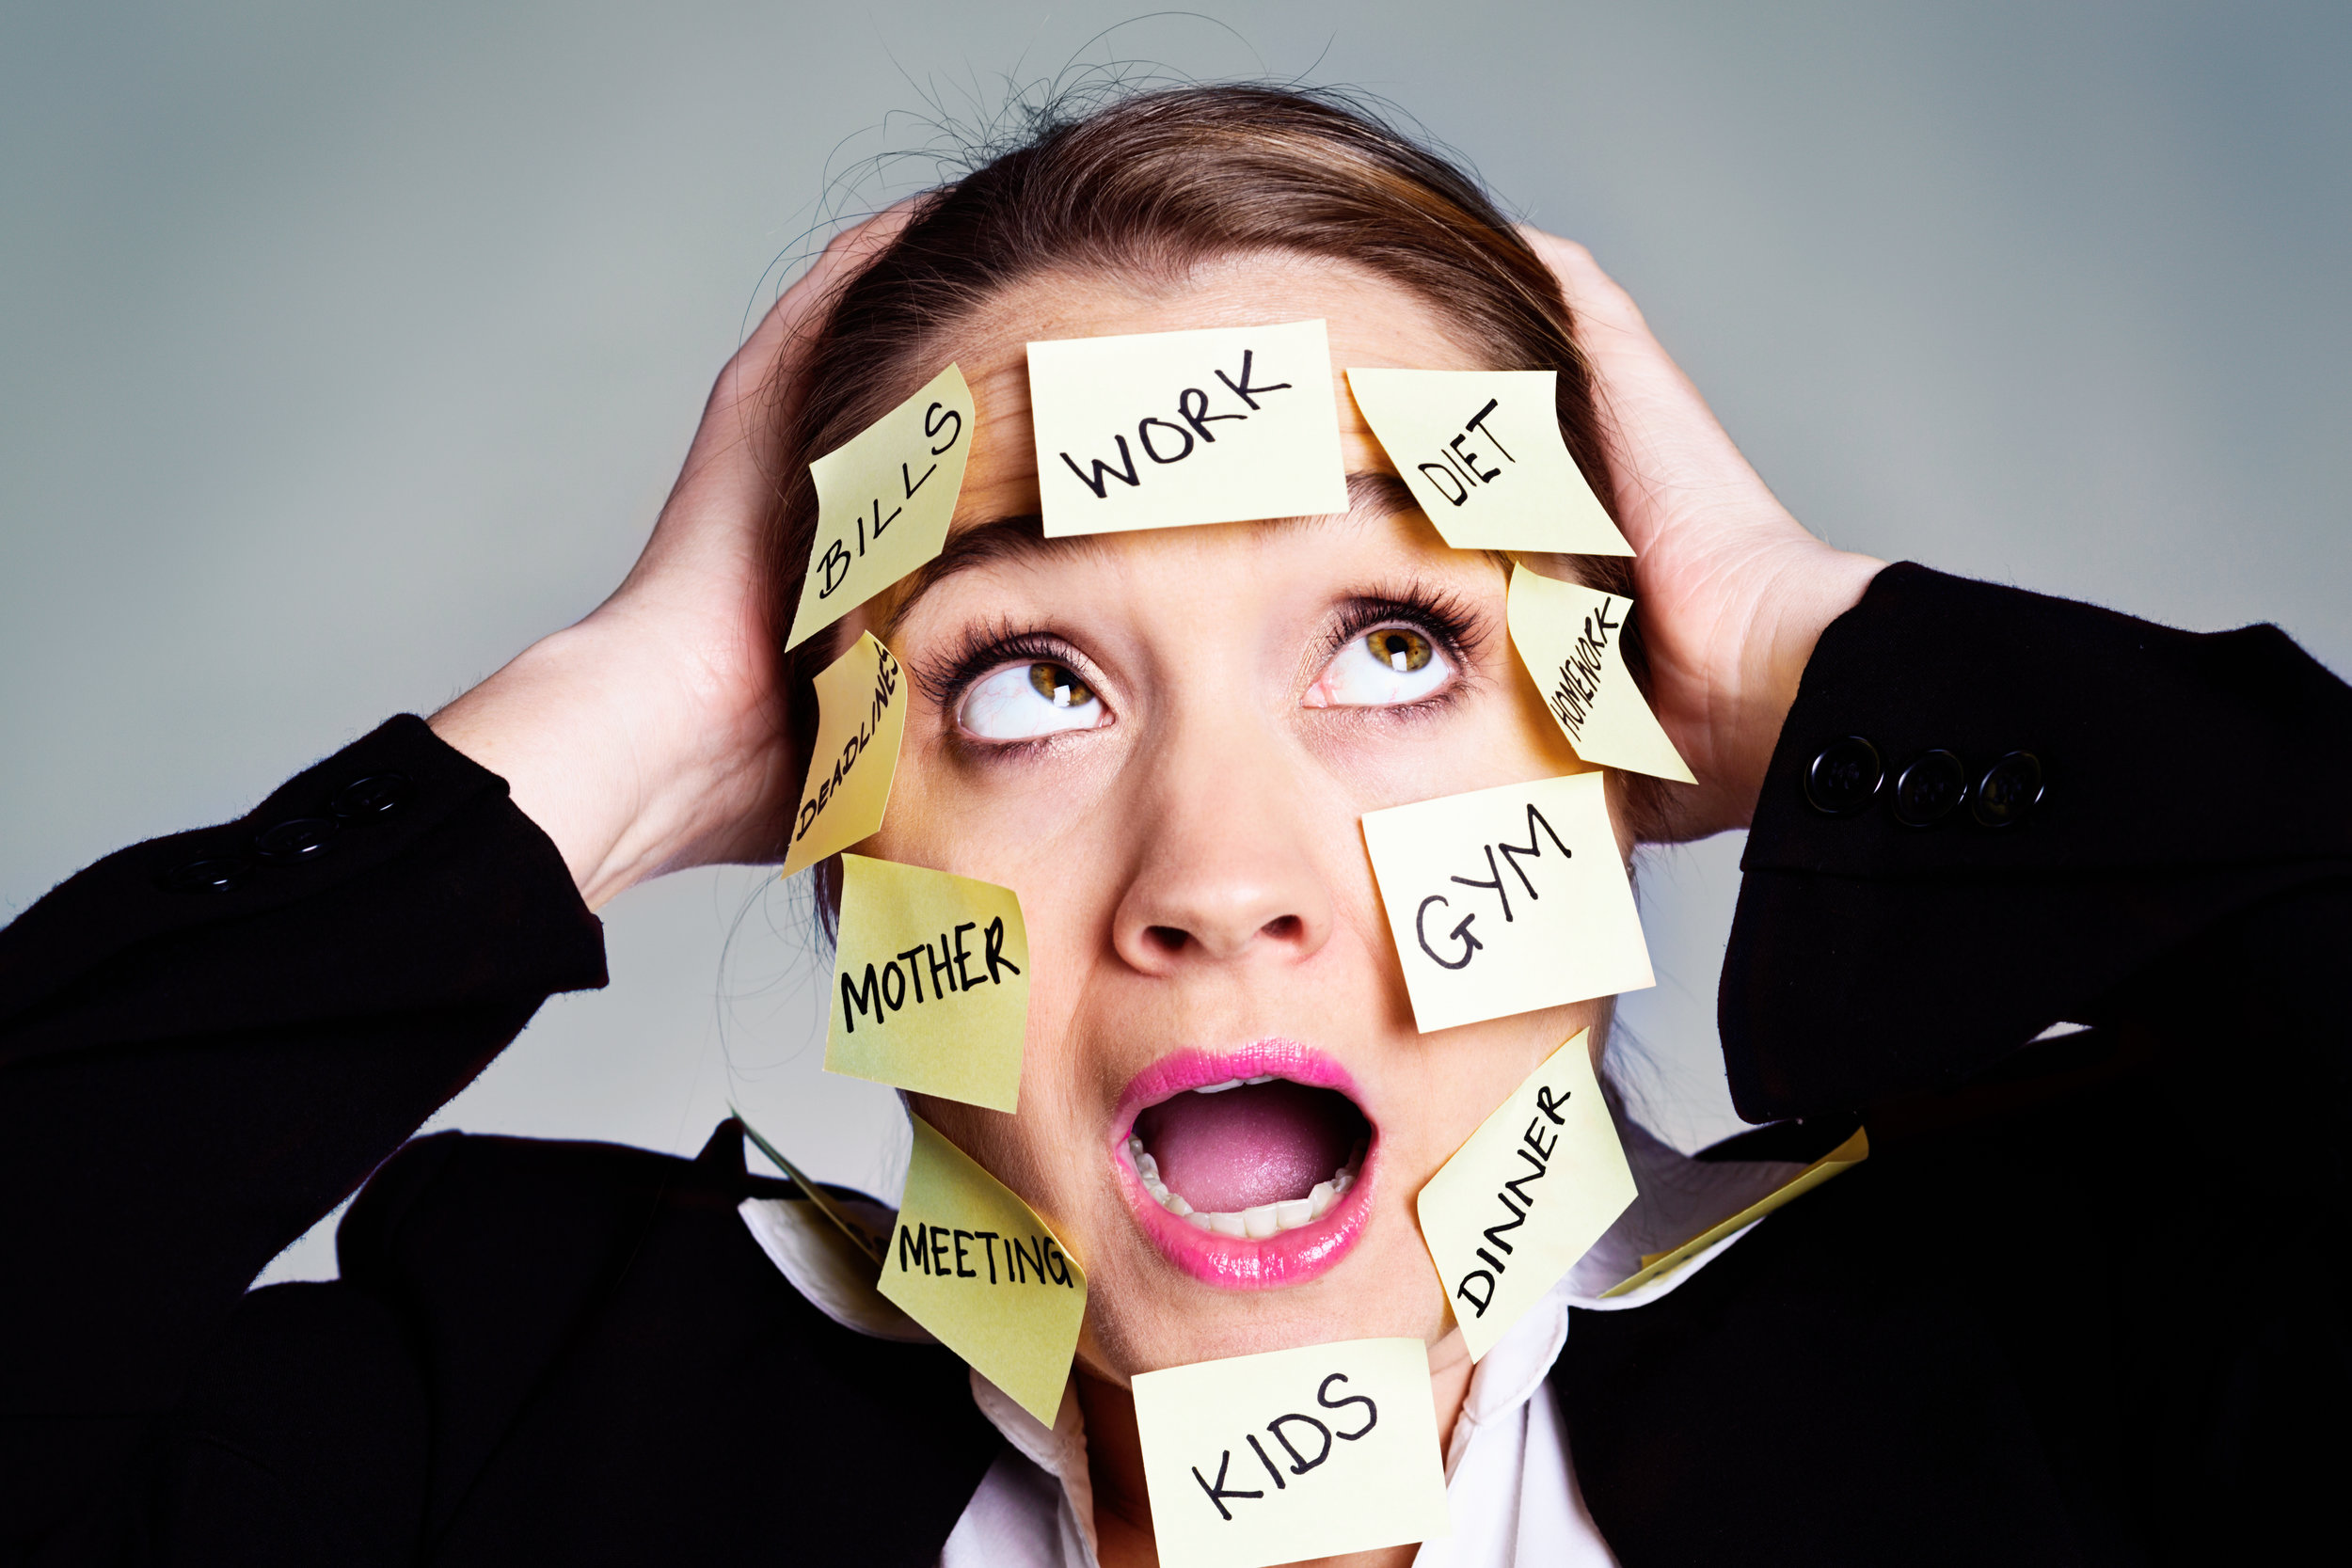 panic-as-businesswoman-is-overwhelmed-by-task-reminder-labels-186581571_5760x3840.jpeg